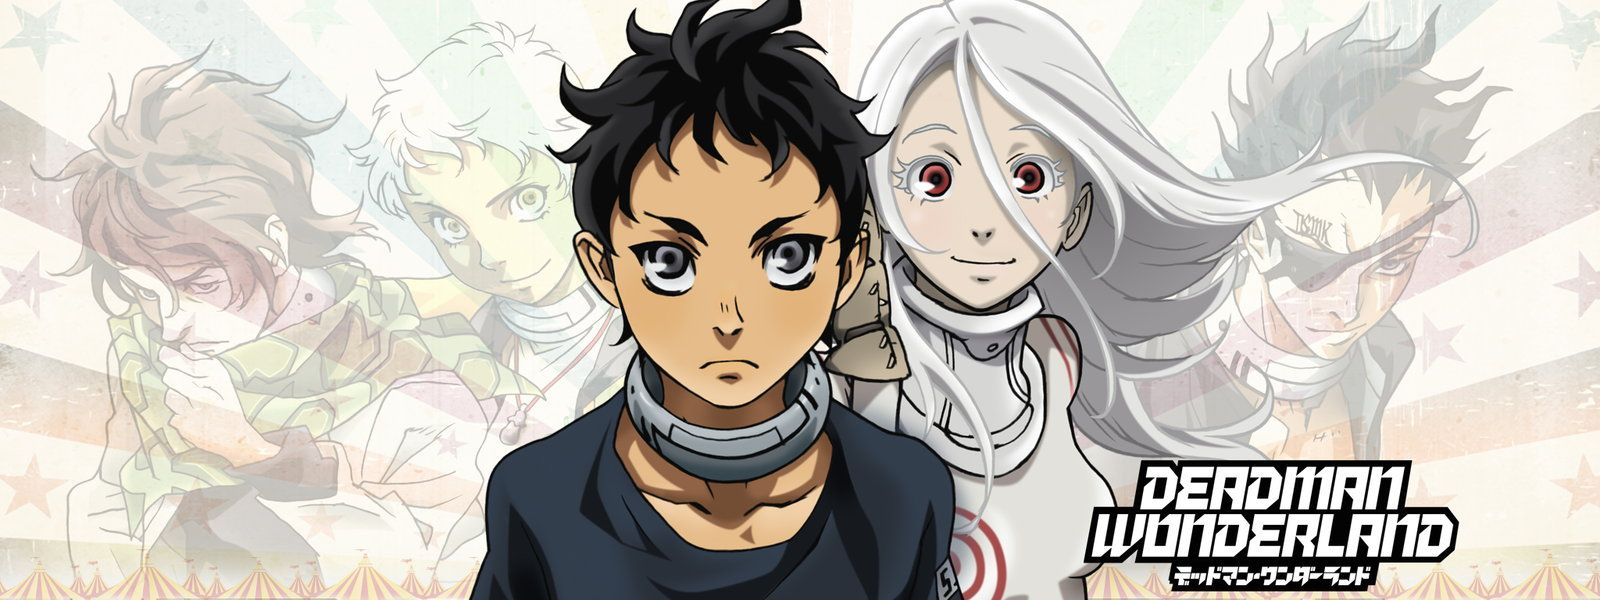 Watch Deadman Wonderland Online Free Hulu With Images